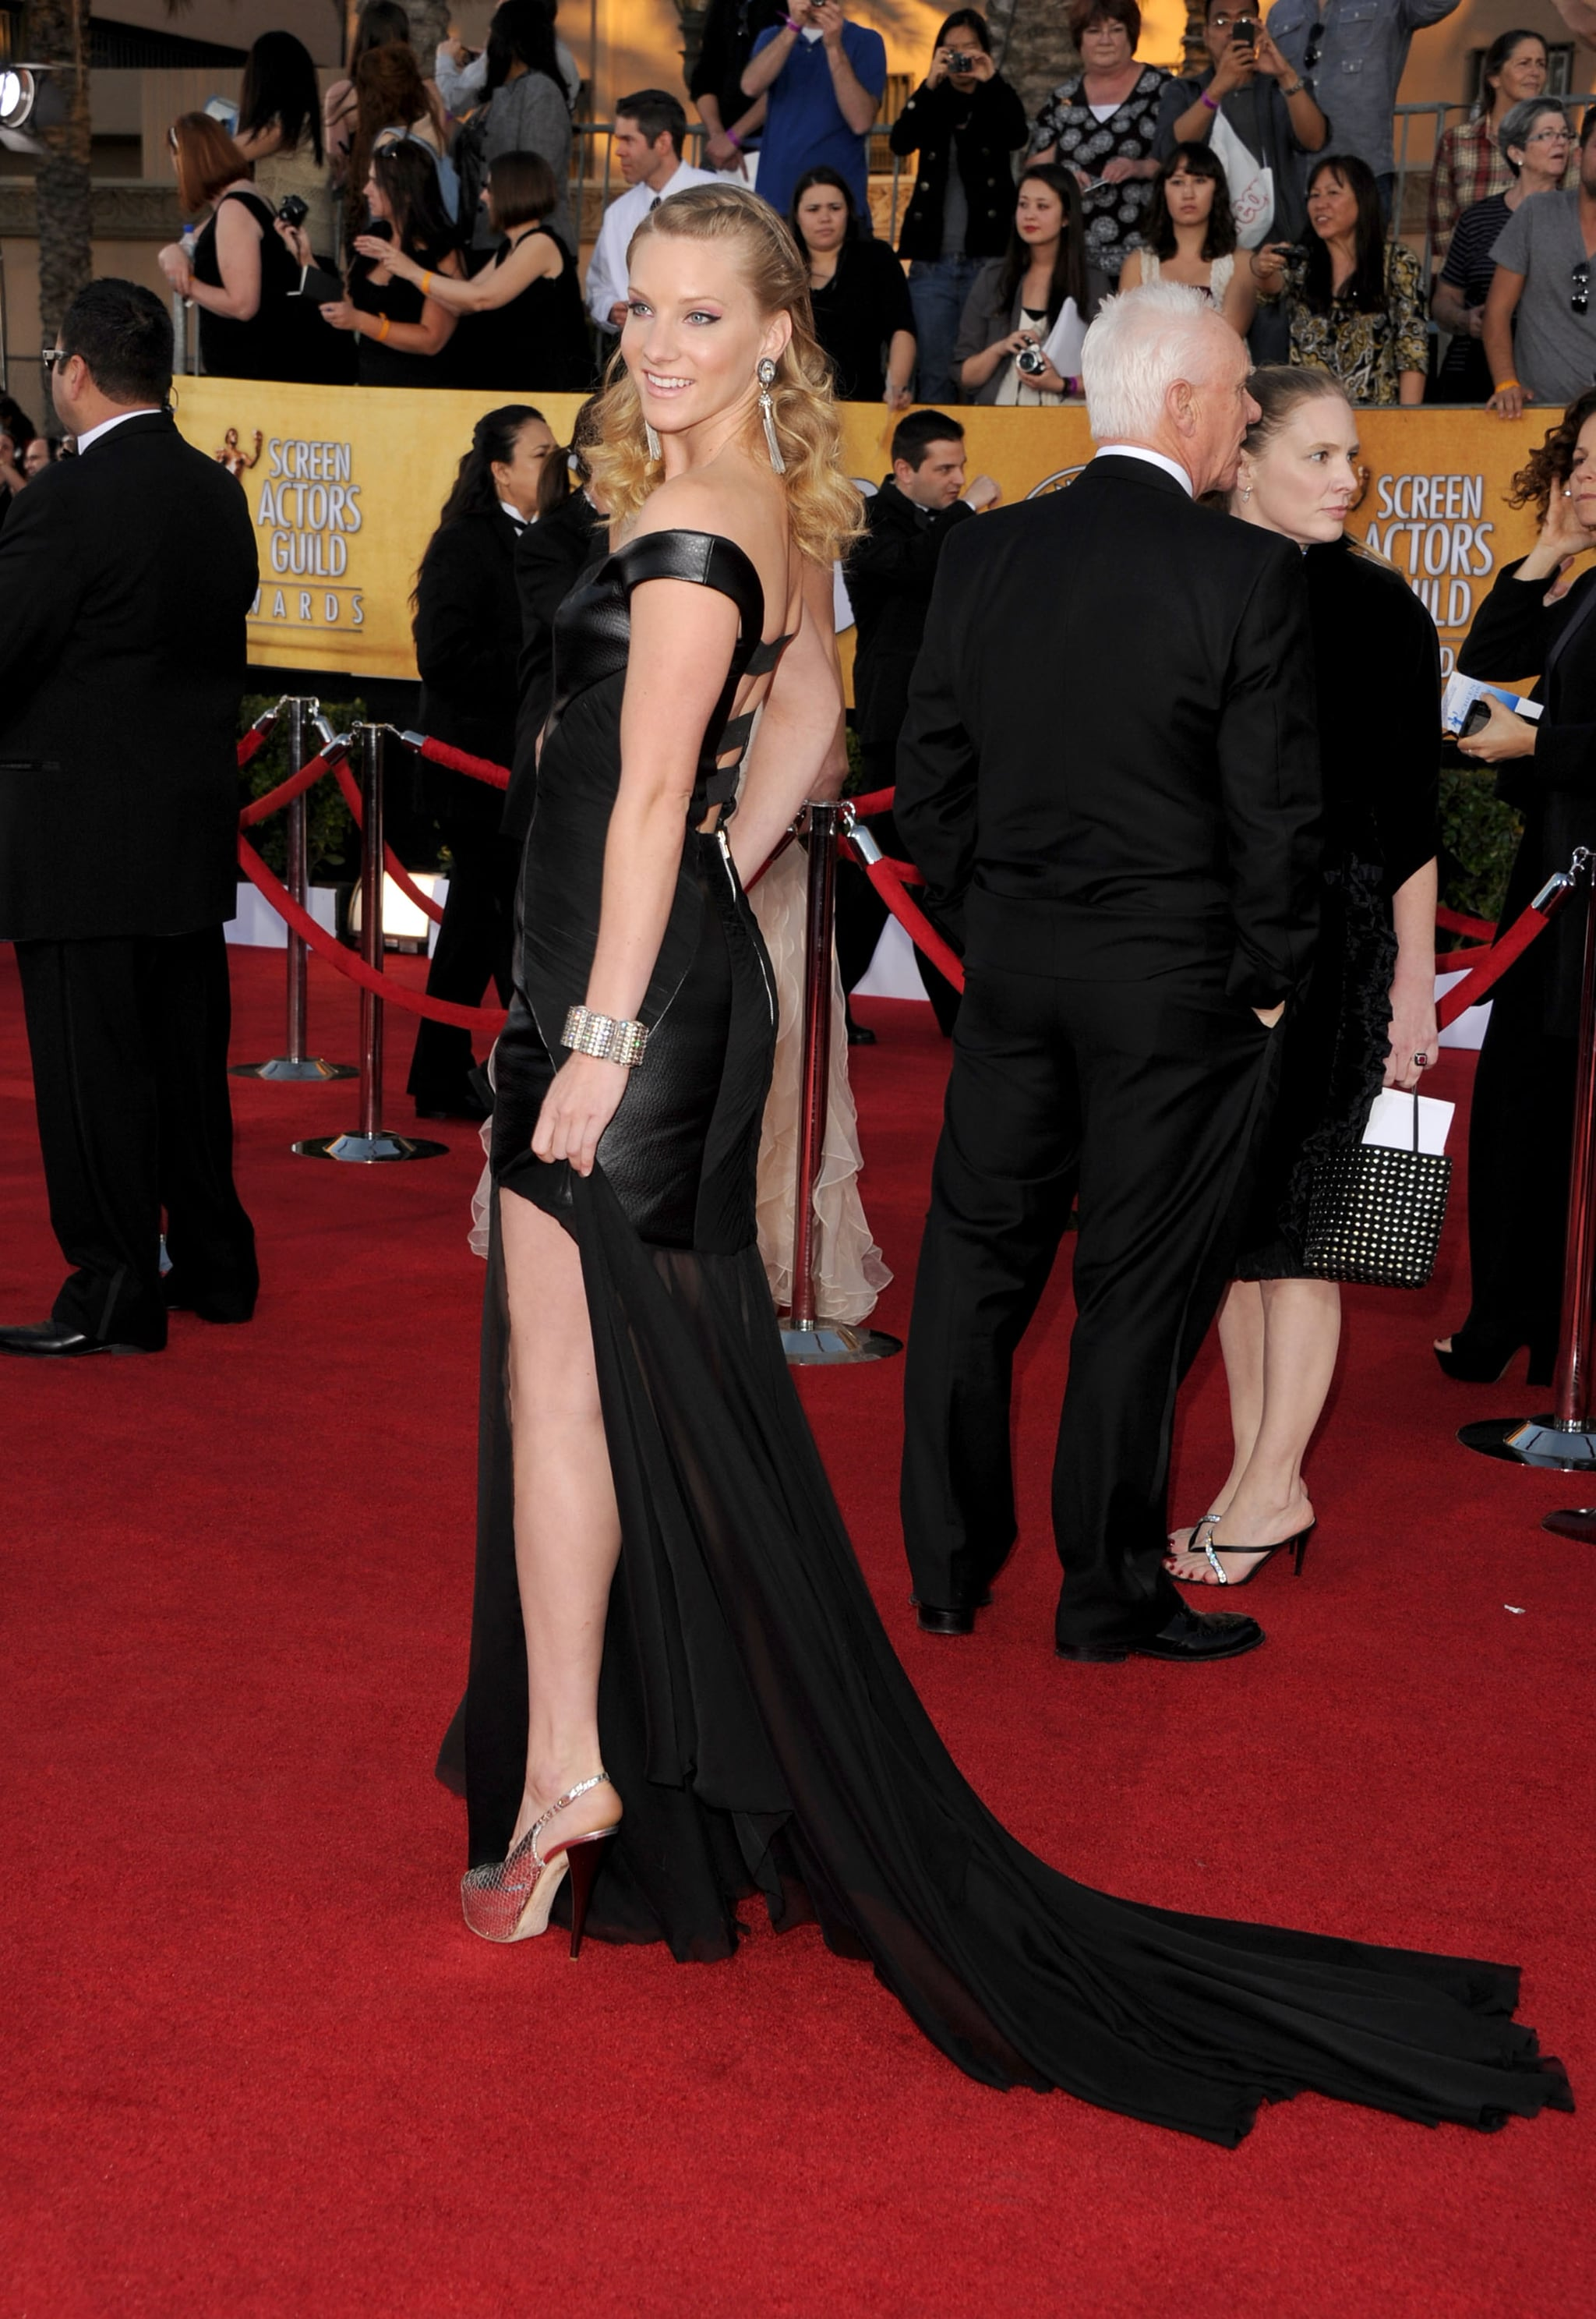 Heather Morris at the SAG Awards